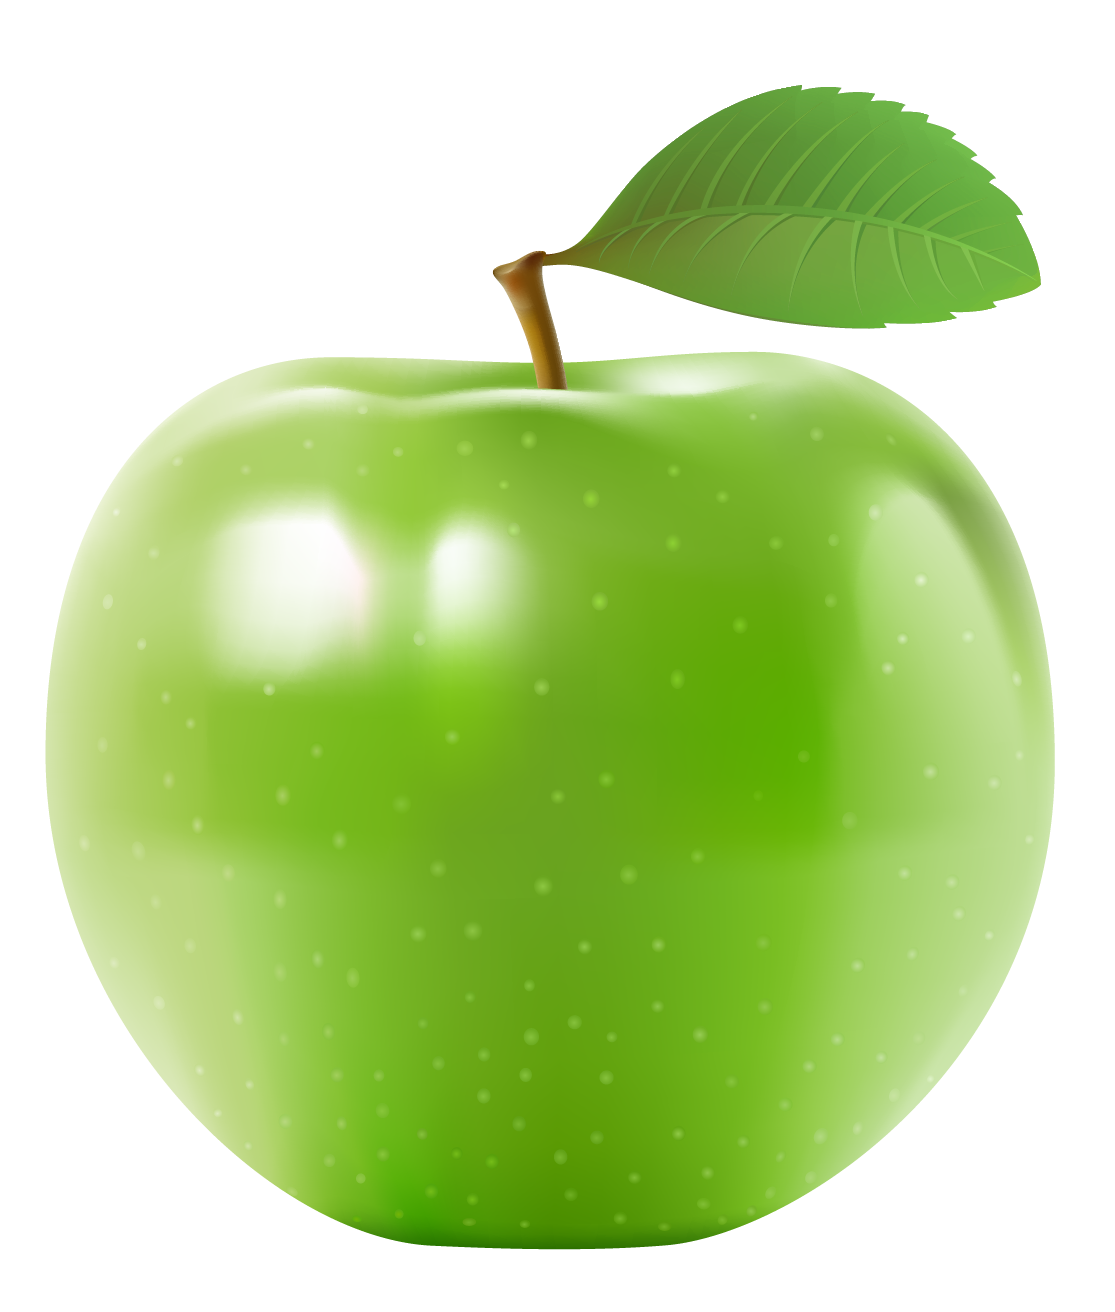 Mango clipart apple. Green png picture gallery